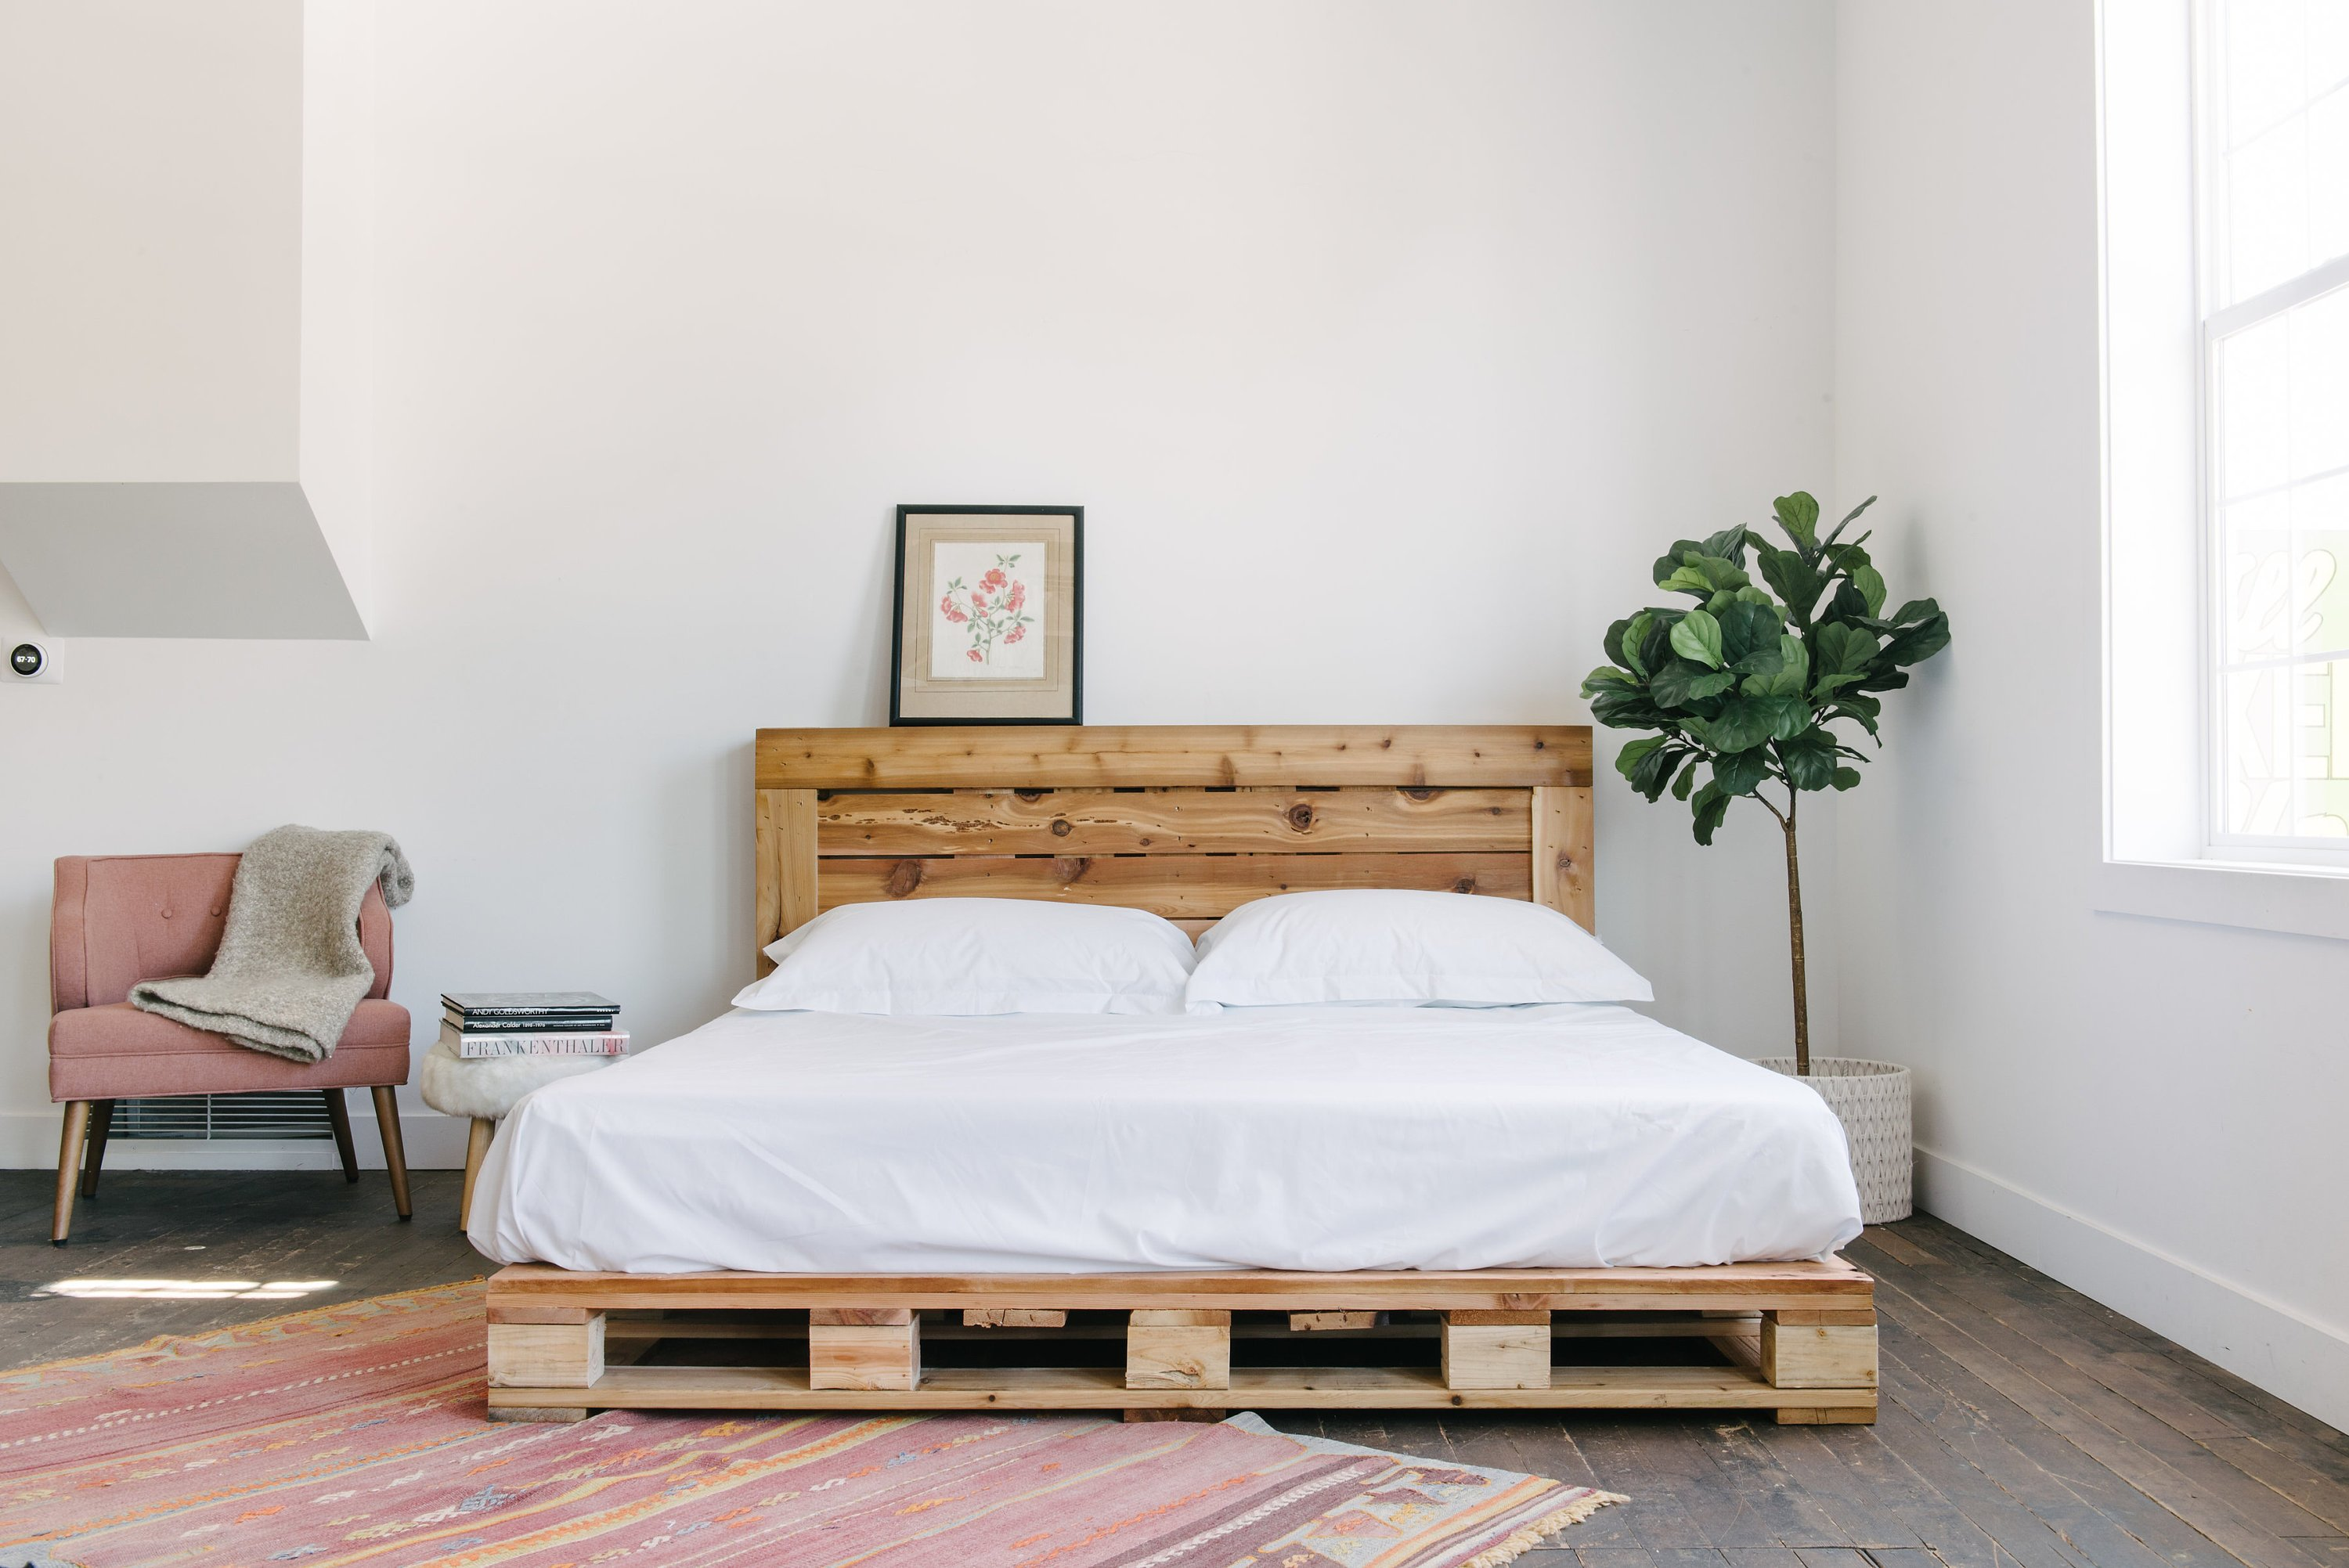 Read This Before Getting a Pallet Bed